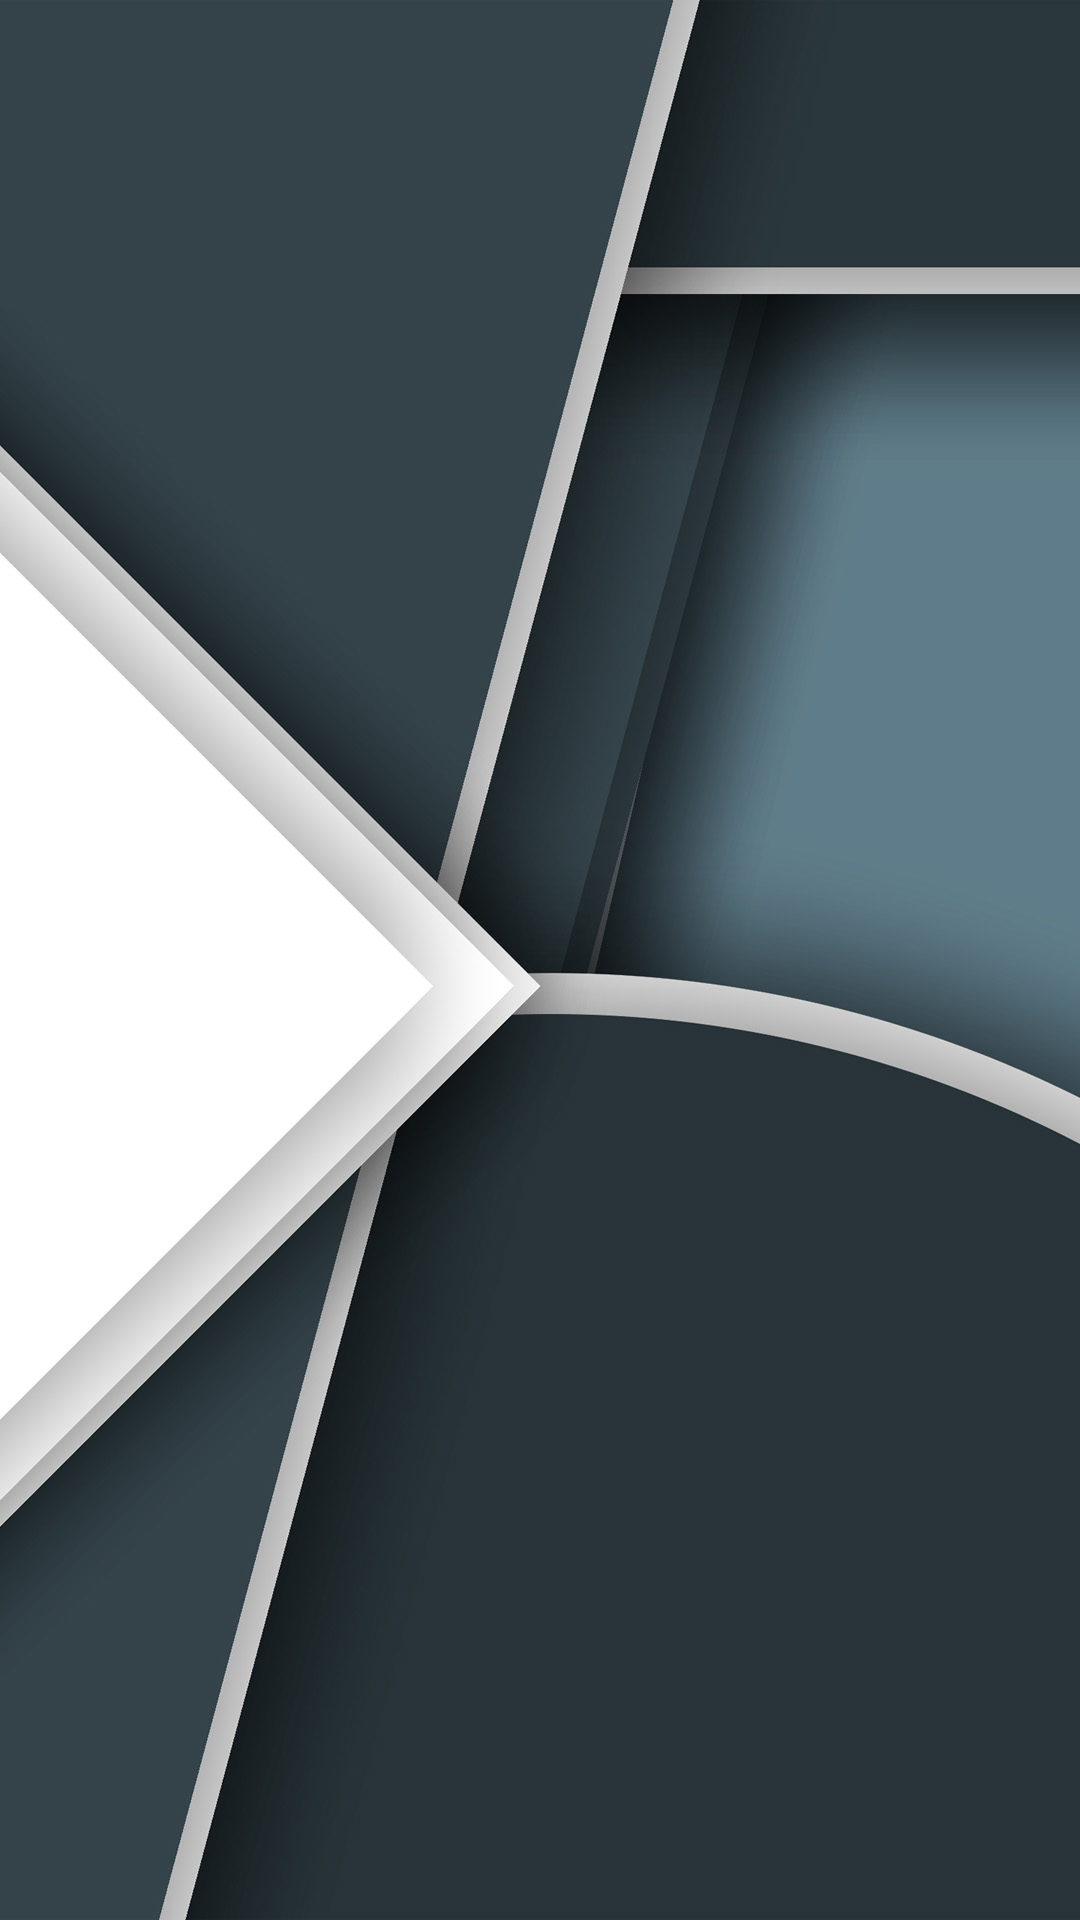 Creative Geometric Theme Wallpapers For Iphone